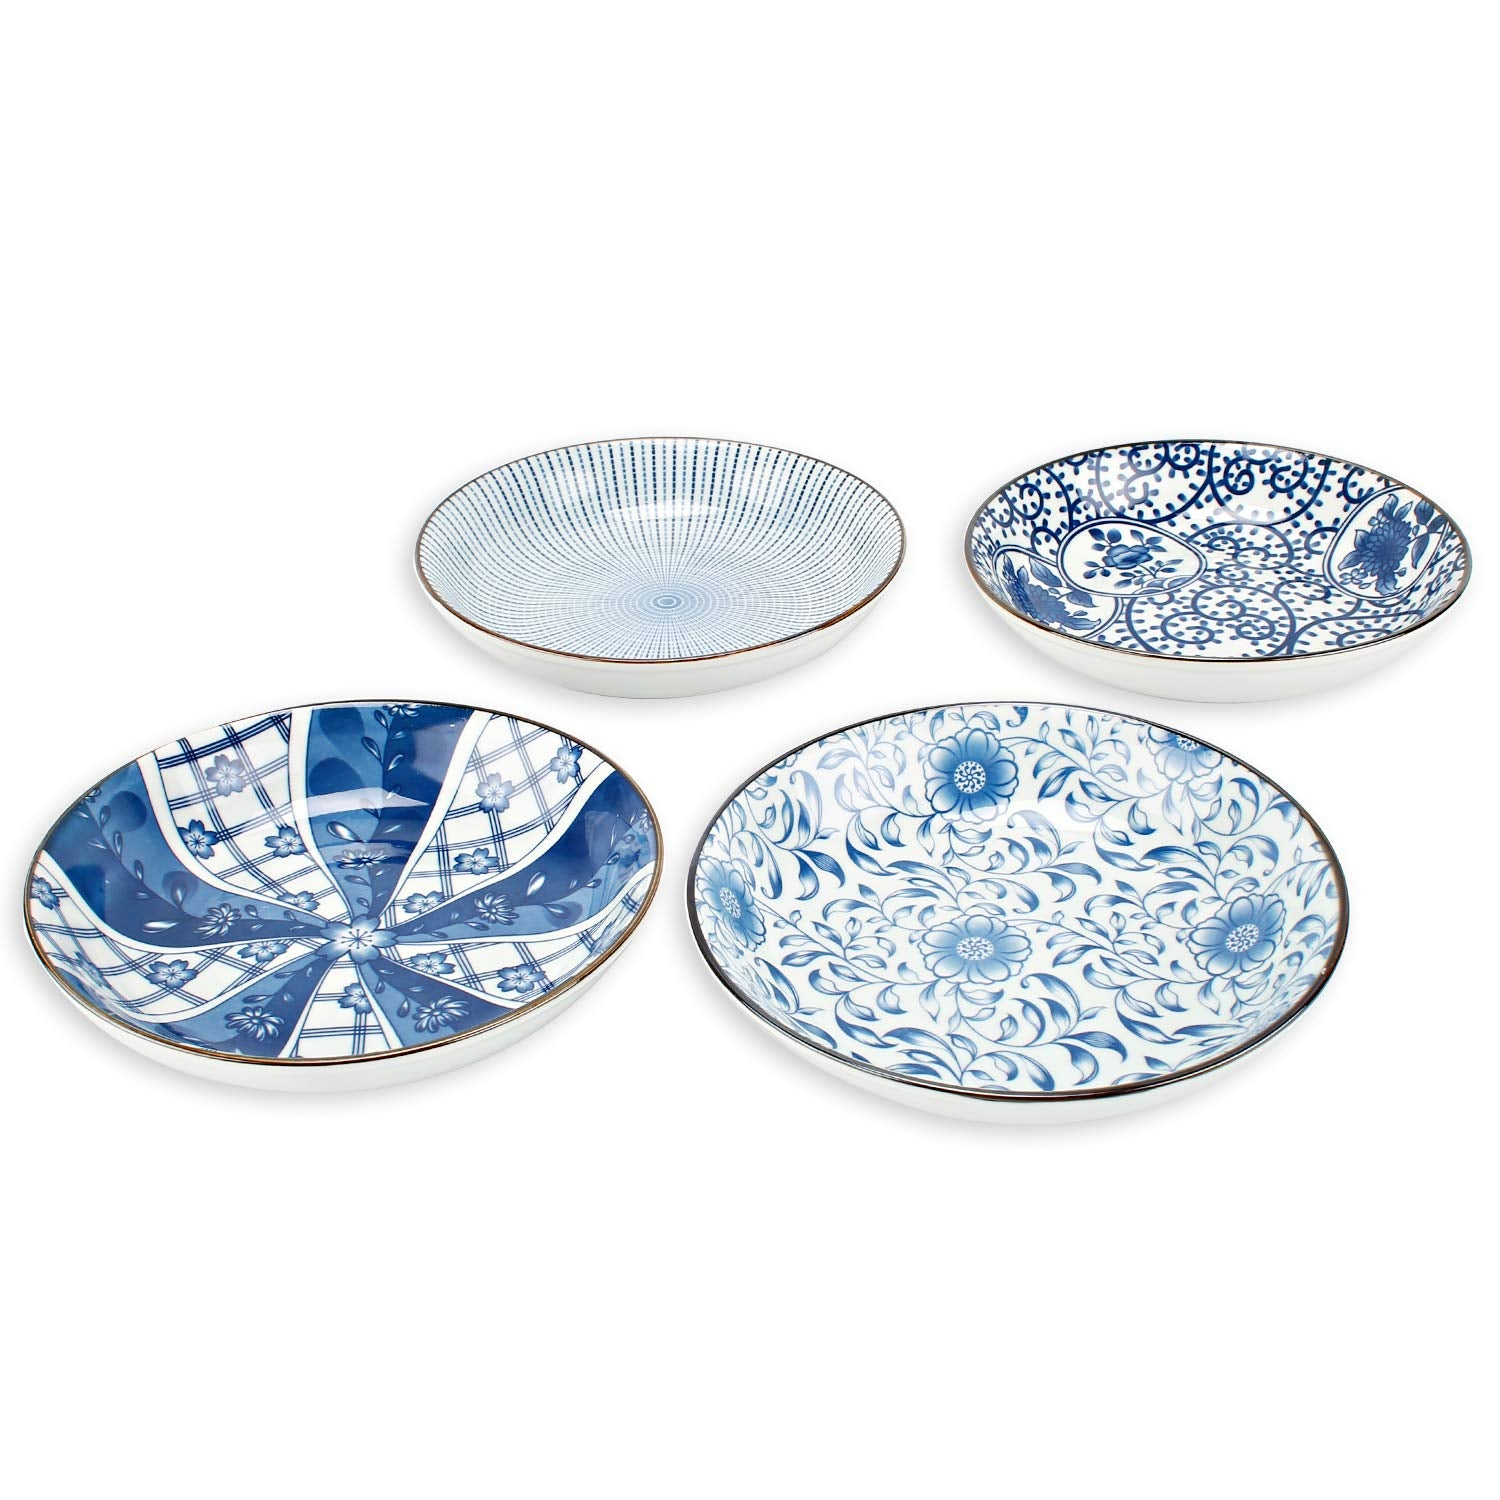 Porcelain Blue and White Bread and Butter Dinner Plate Set, Appetizer Salad Floral Dessert Snack Serving Shallow Plates Set Set of 4, 7-inch